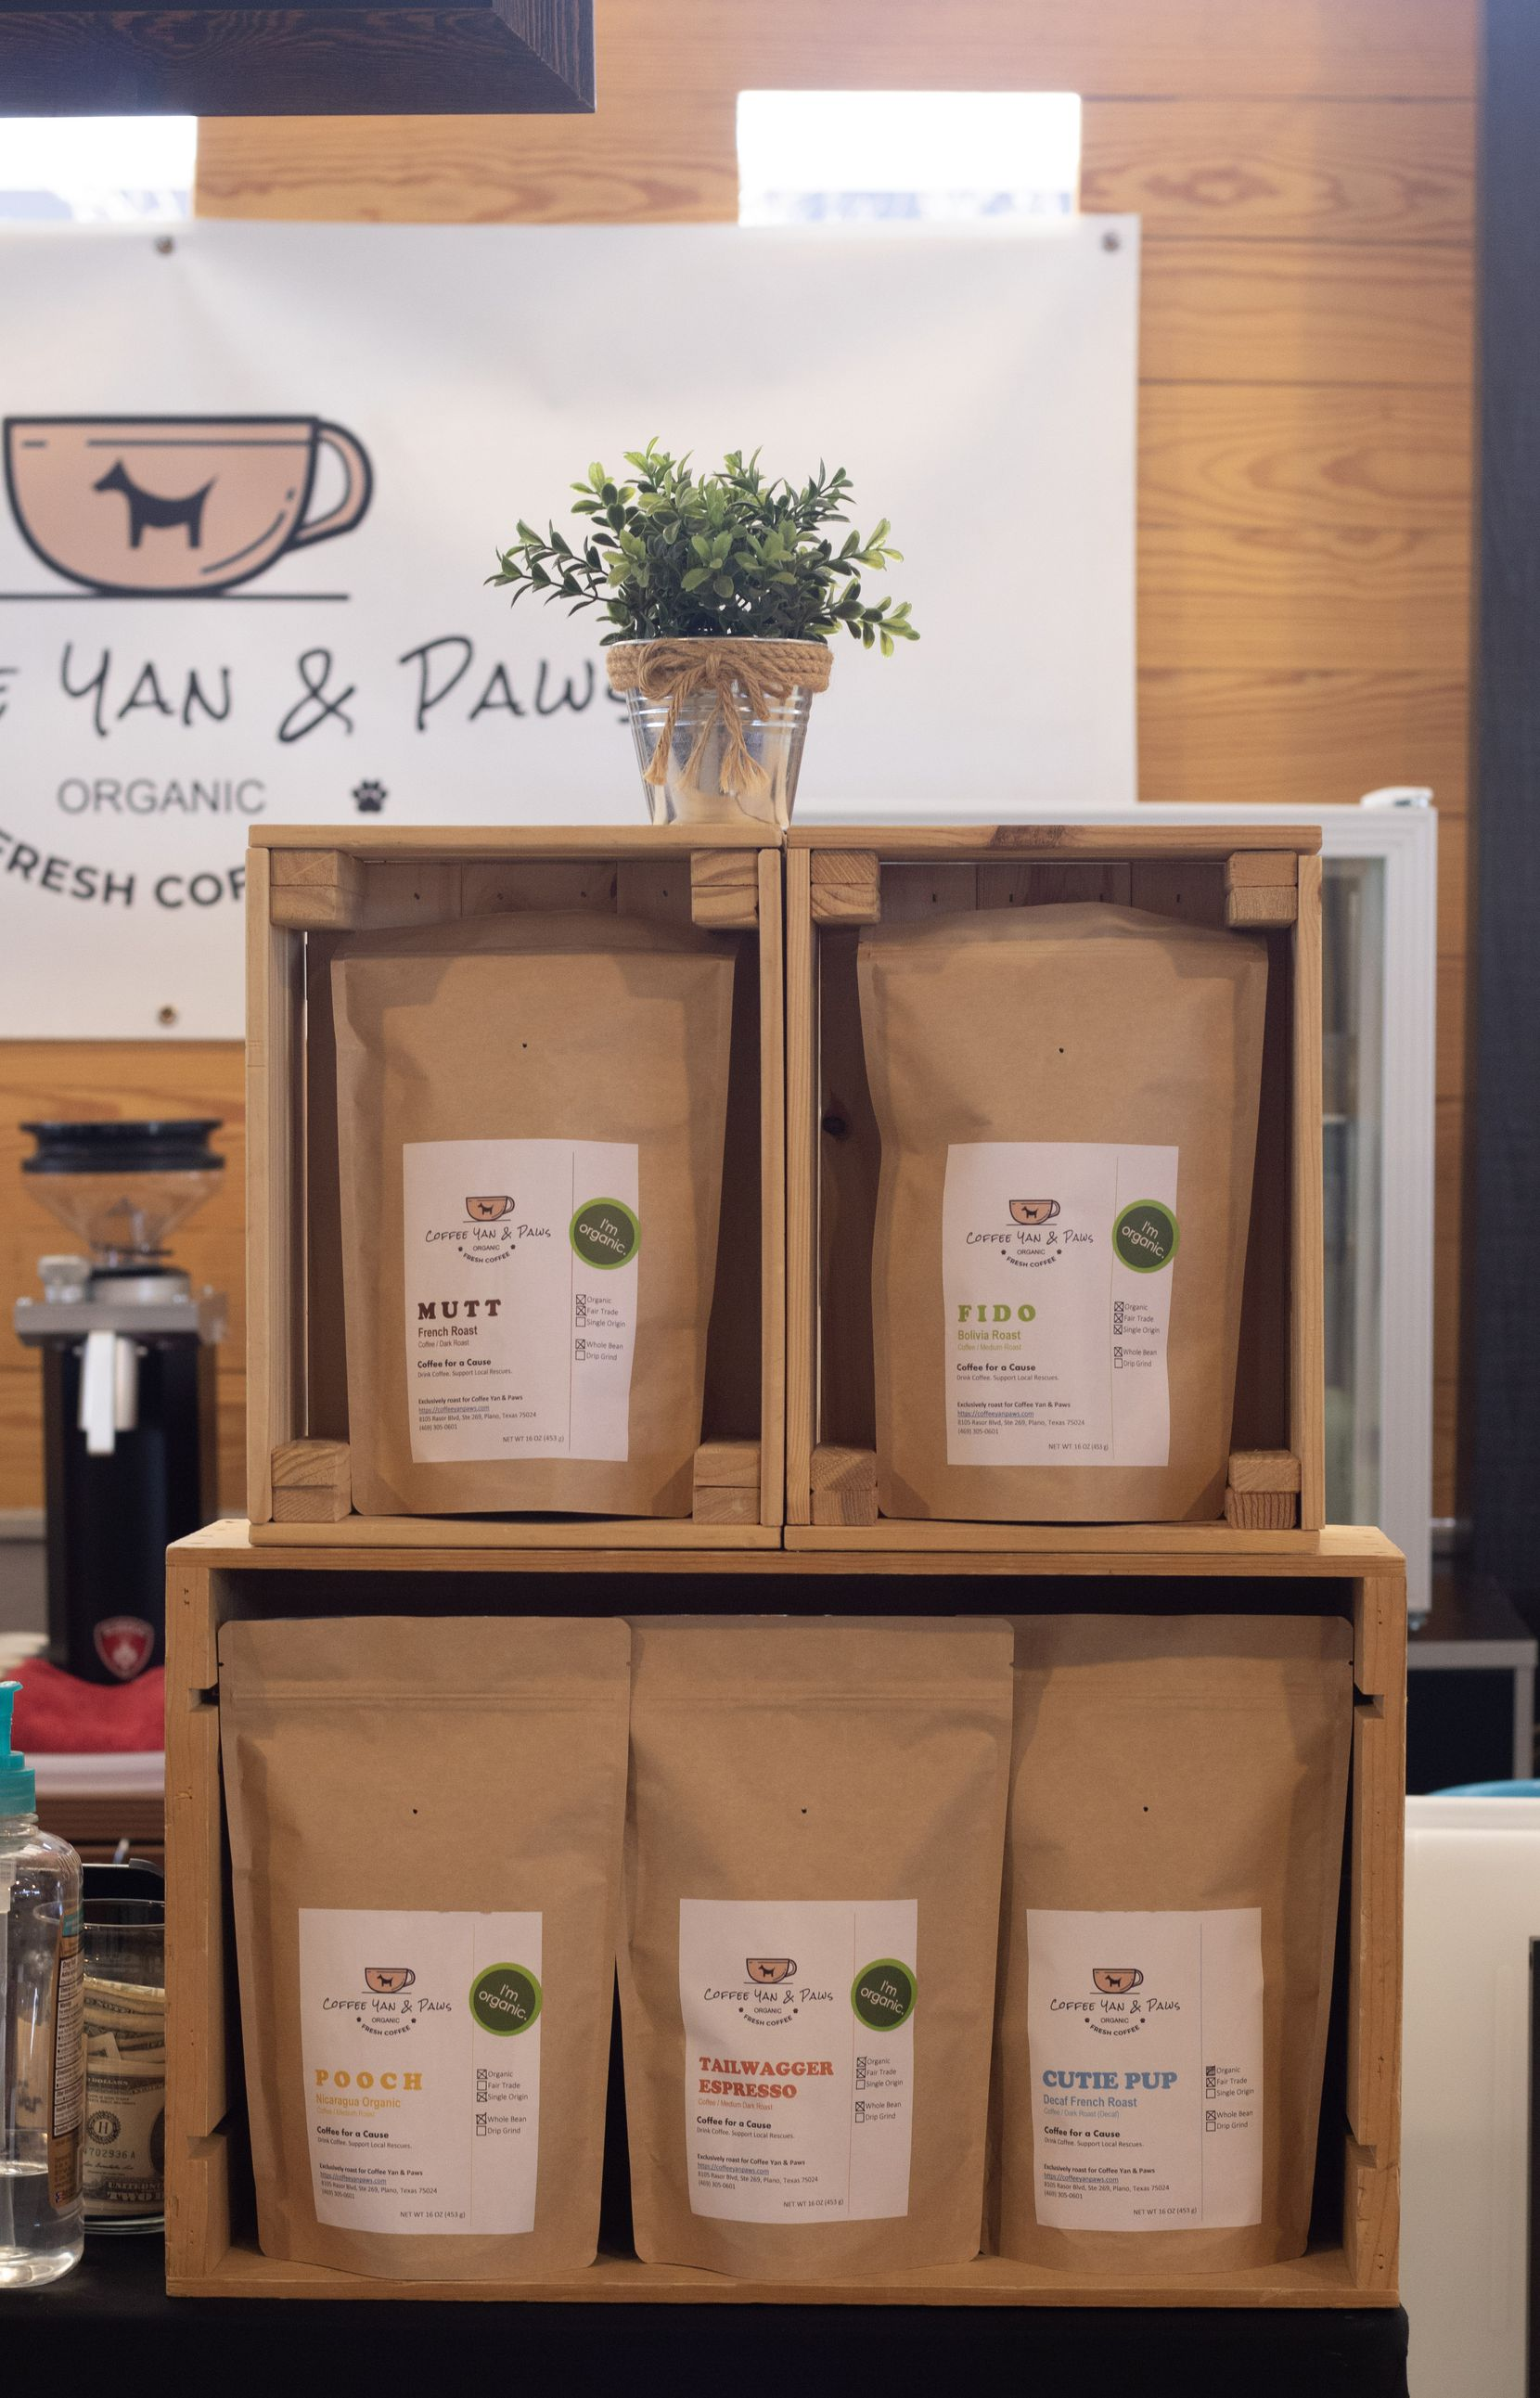 Coffee Yan and Paws at the Frisco Fresh Market donates a portion of proceeds to local animal shelters.